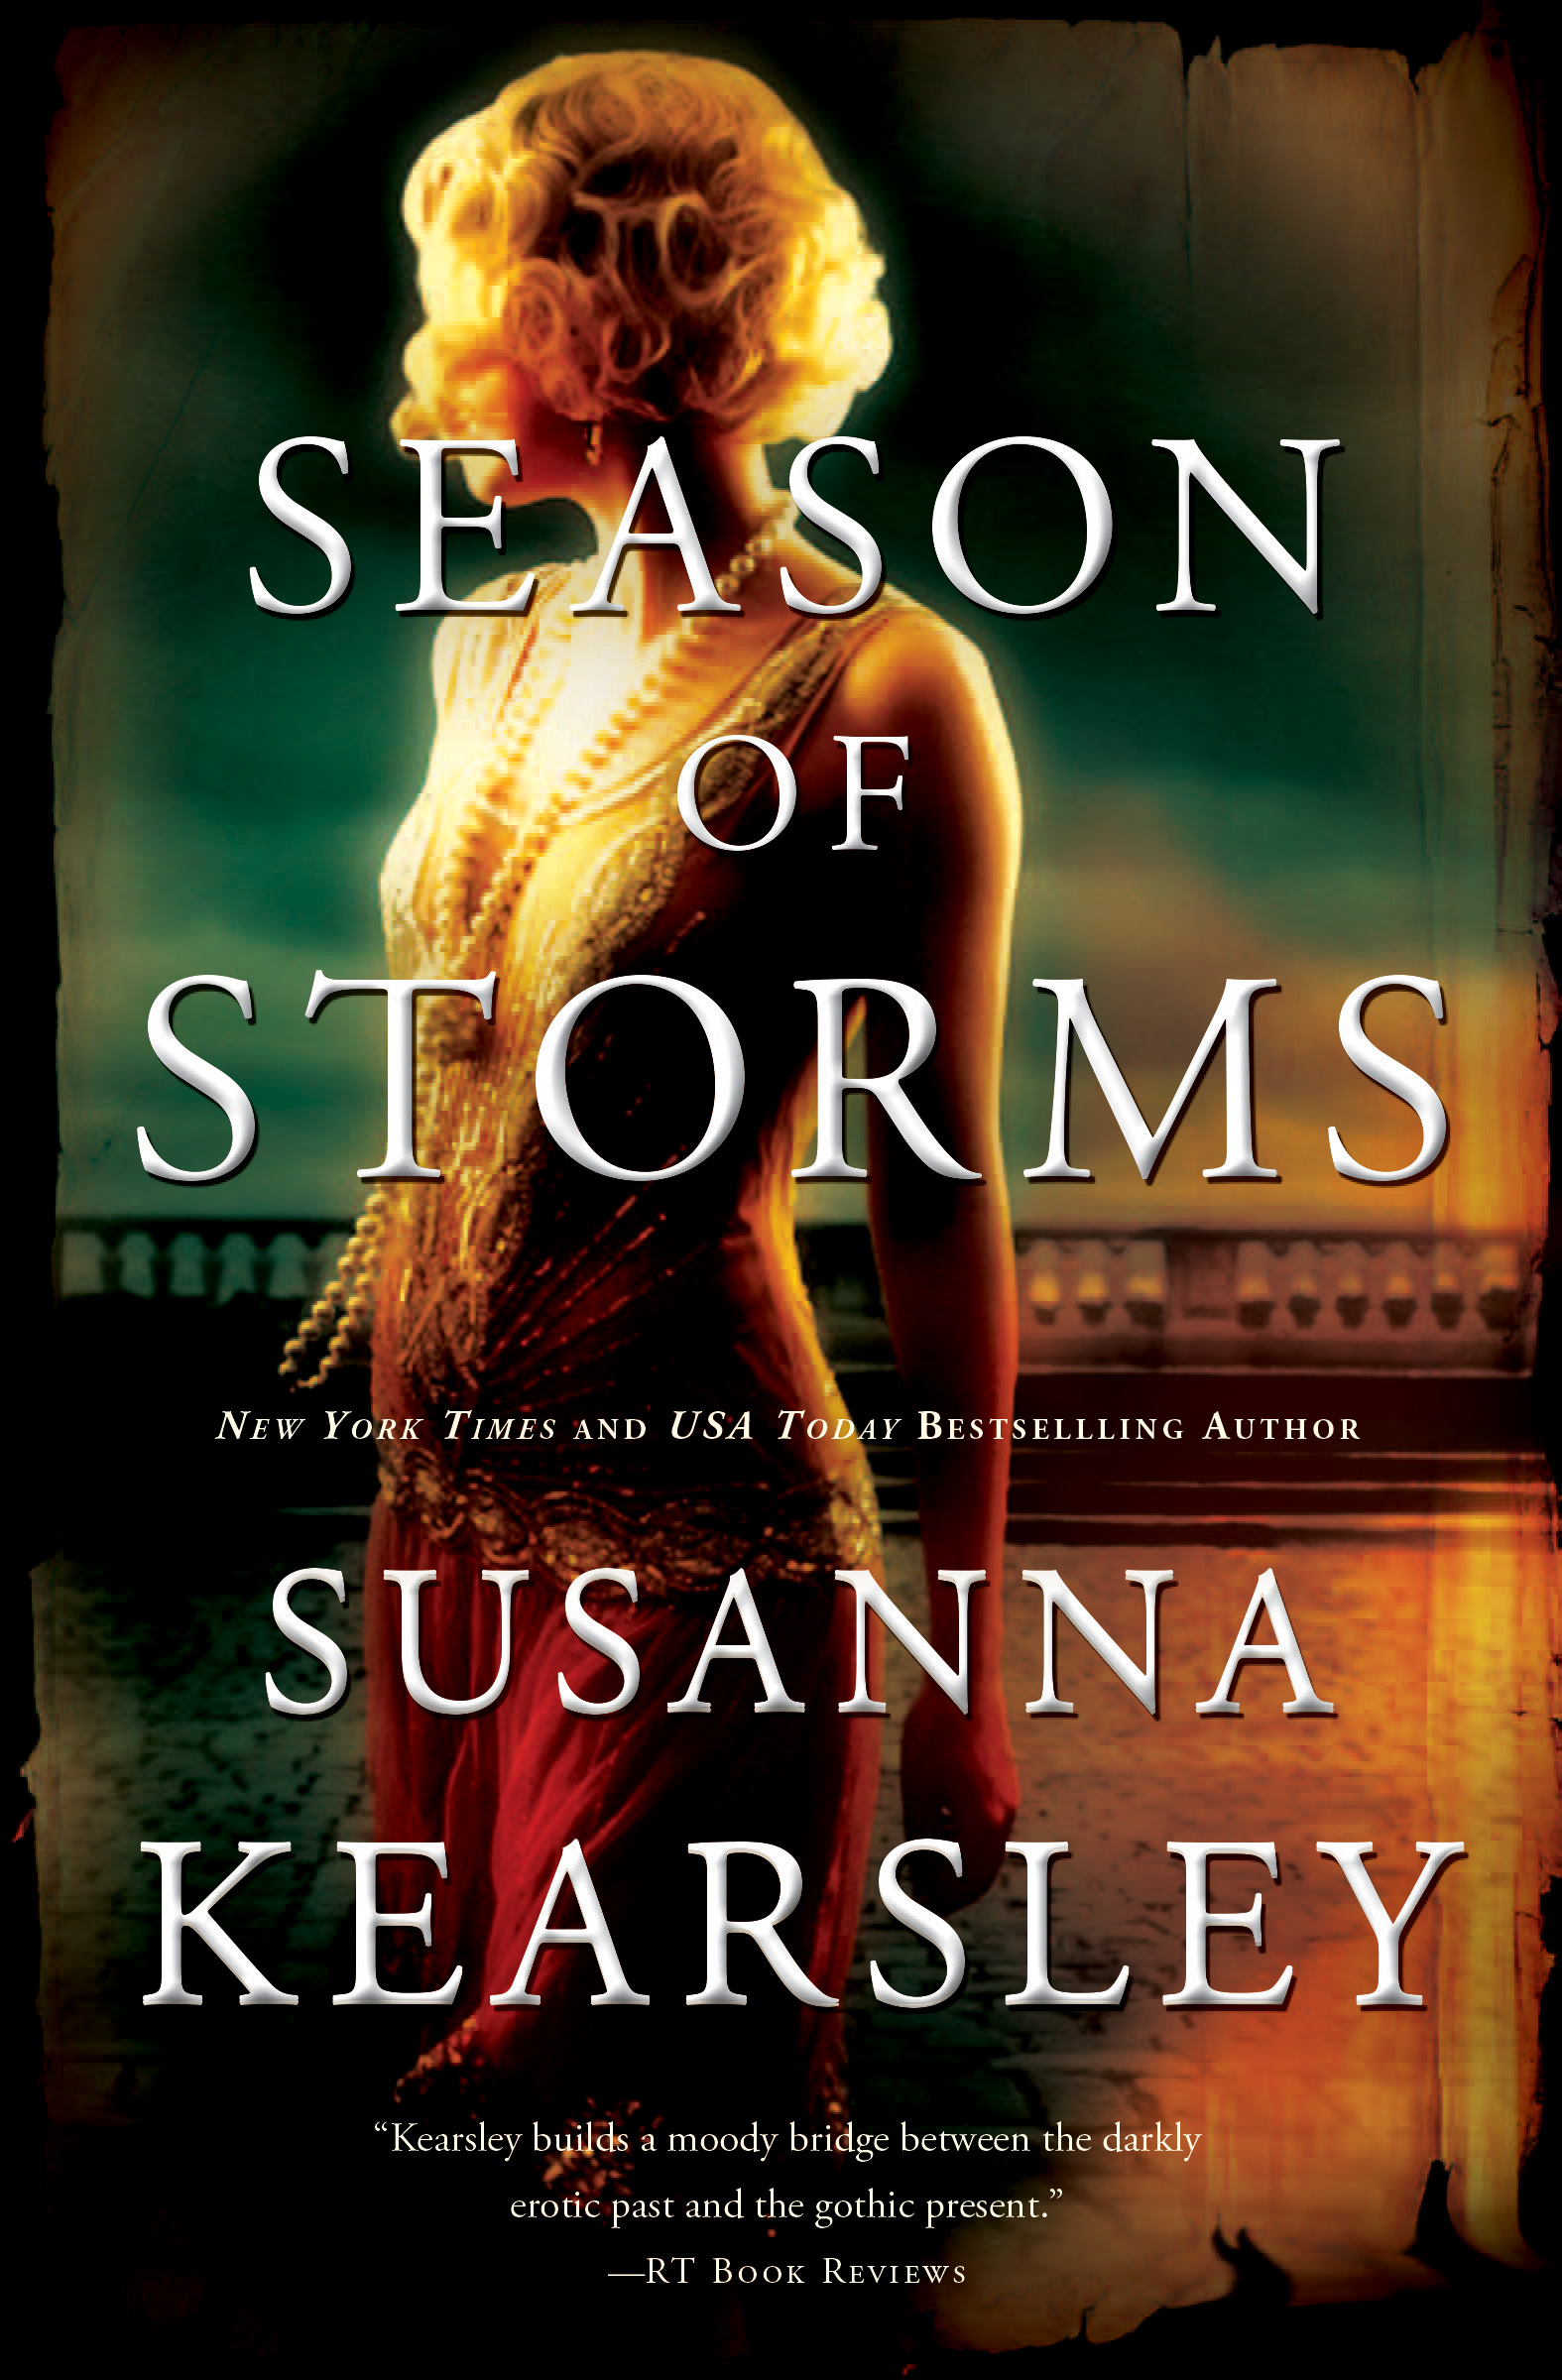 Season of Storms alternate cover - blonde woman in a flapper dress turned away from viewer